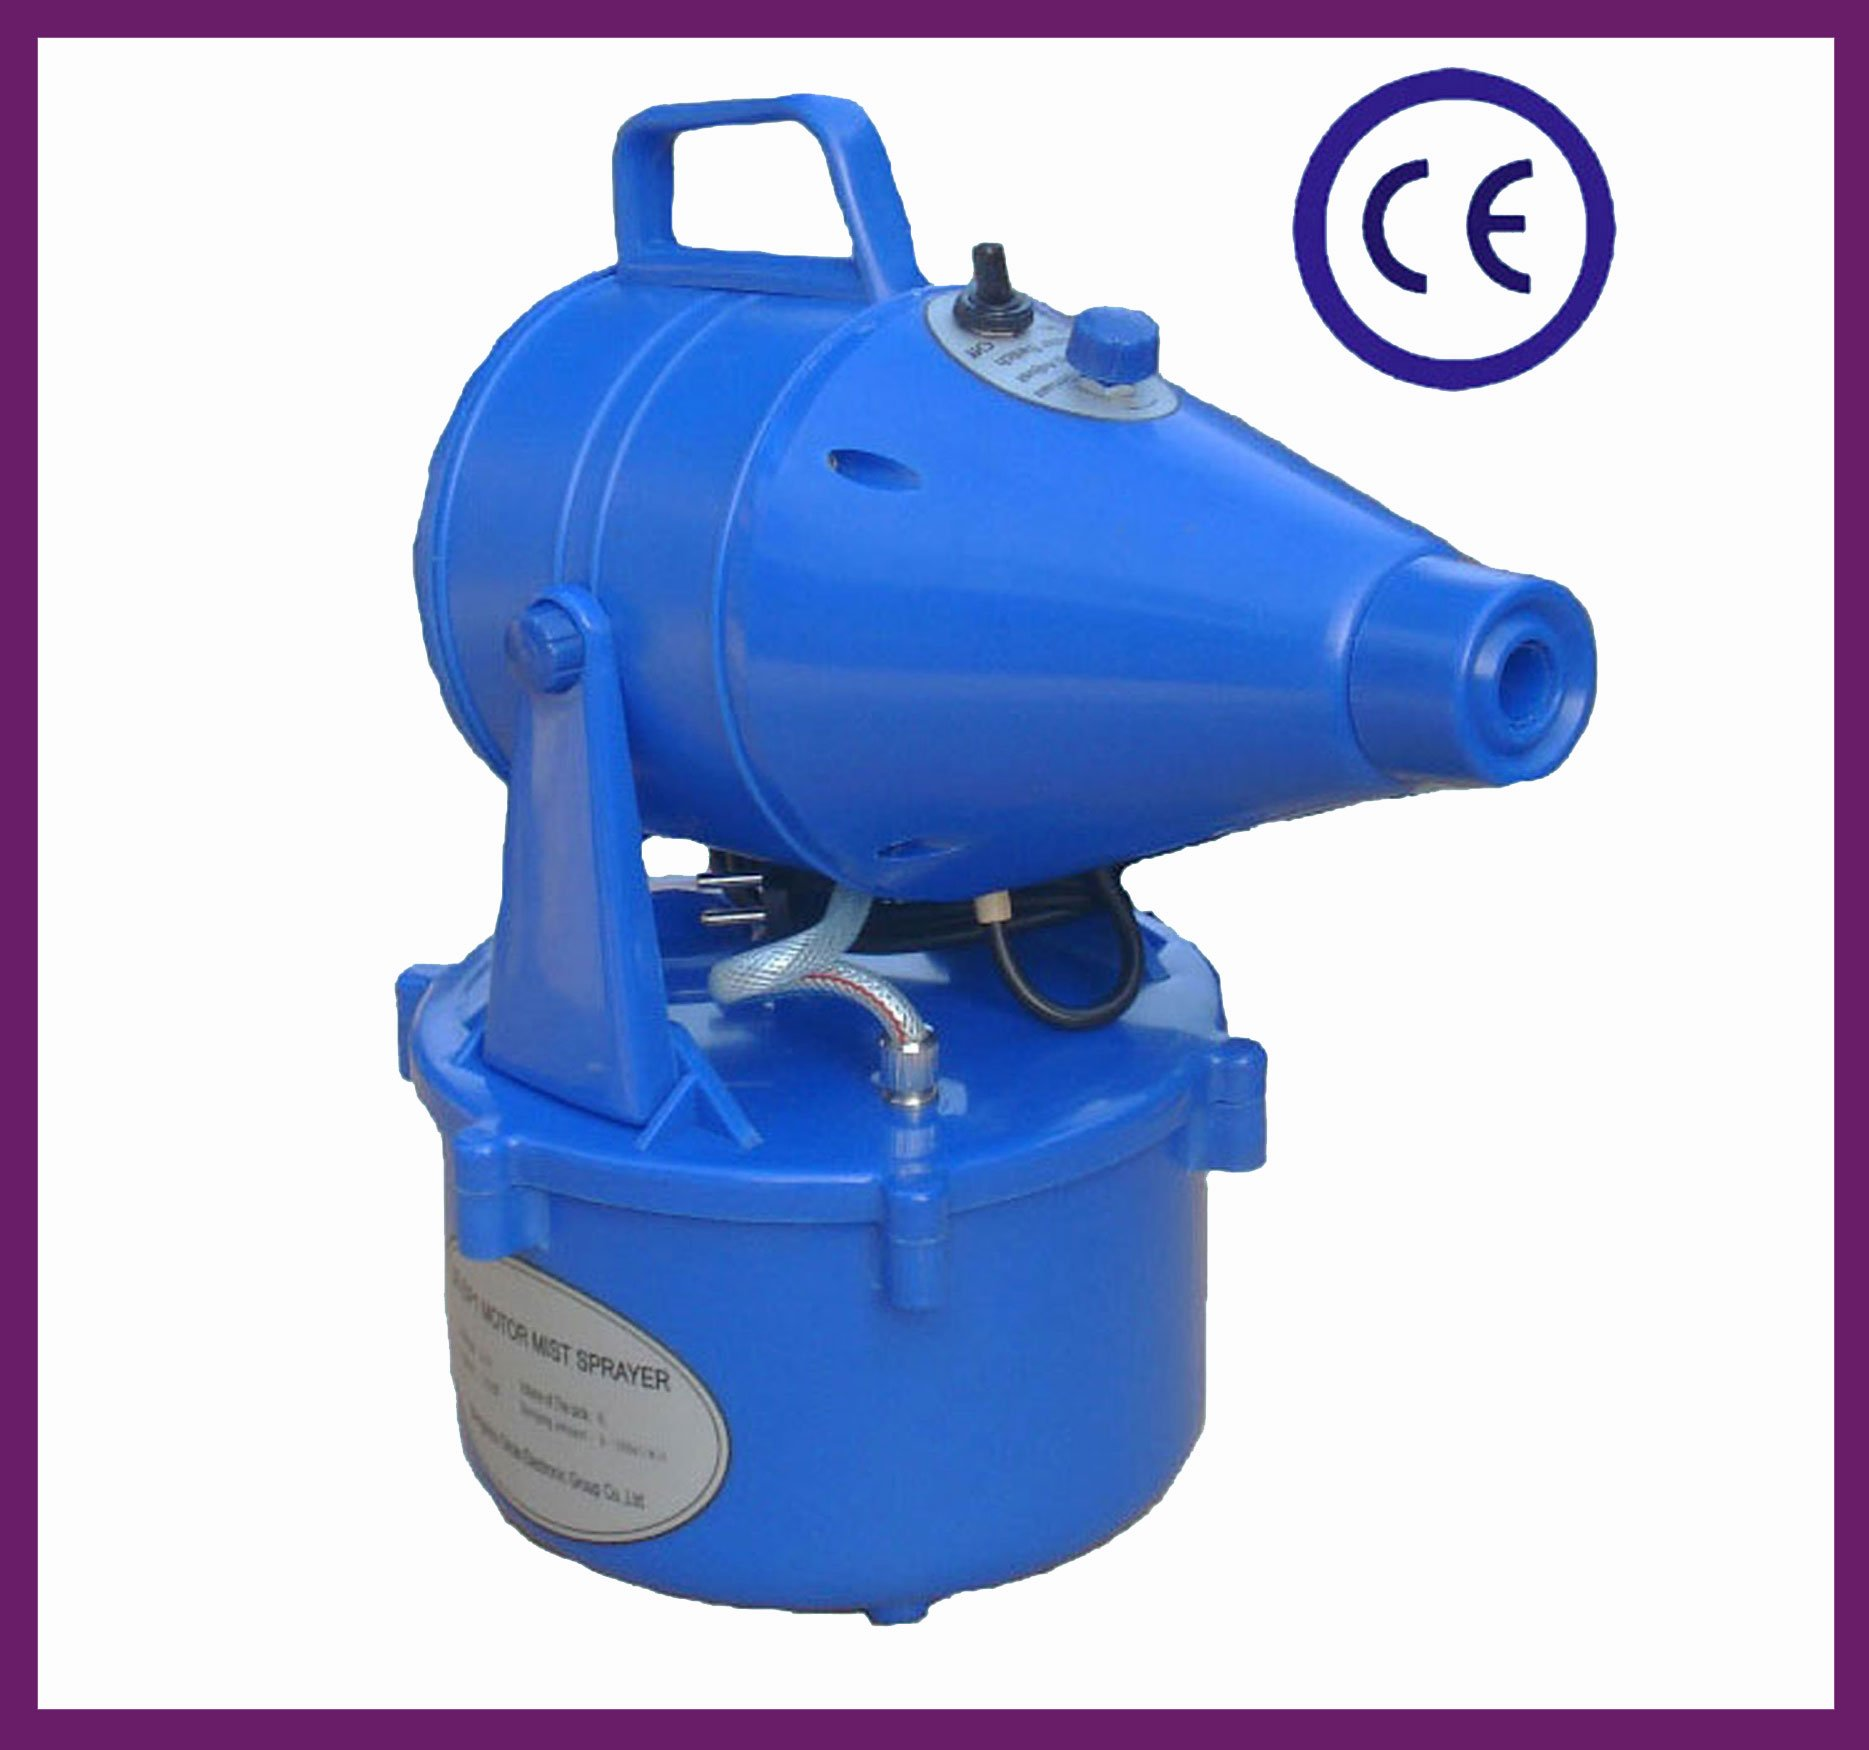 Light Weight Motor Electric Mist Sprayer for Outdoor Disinfection